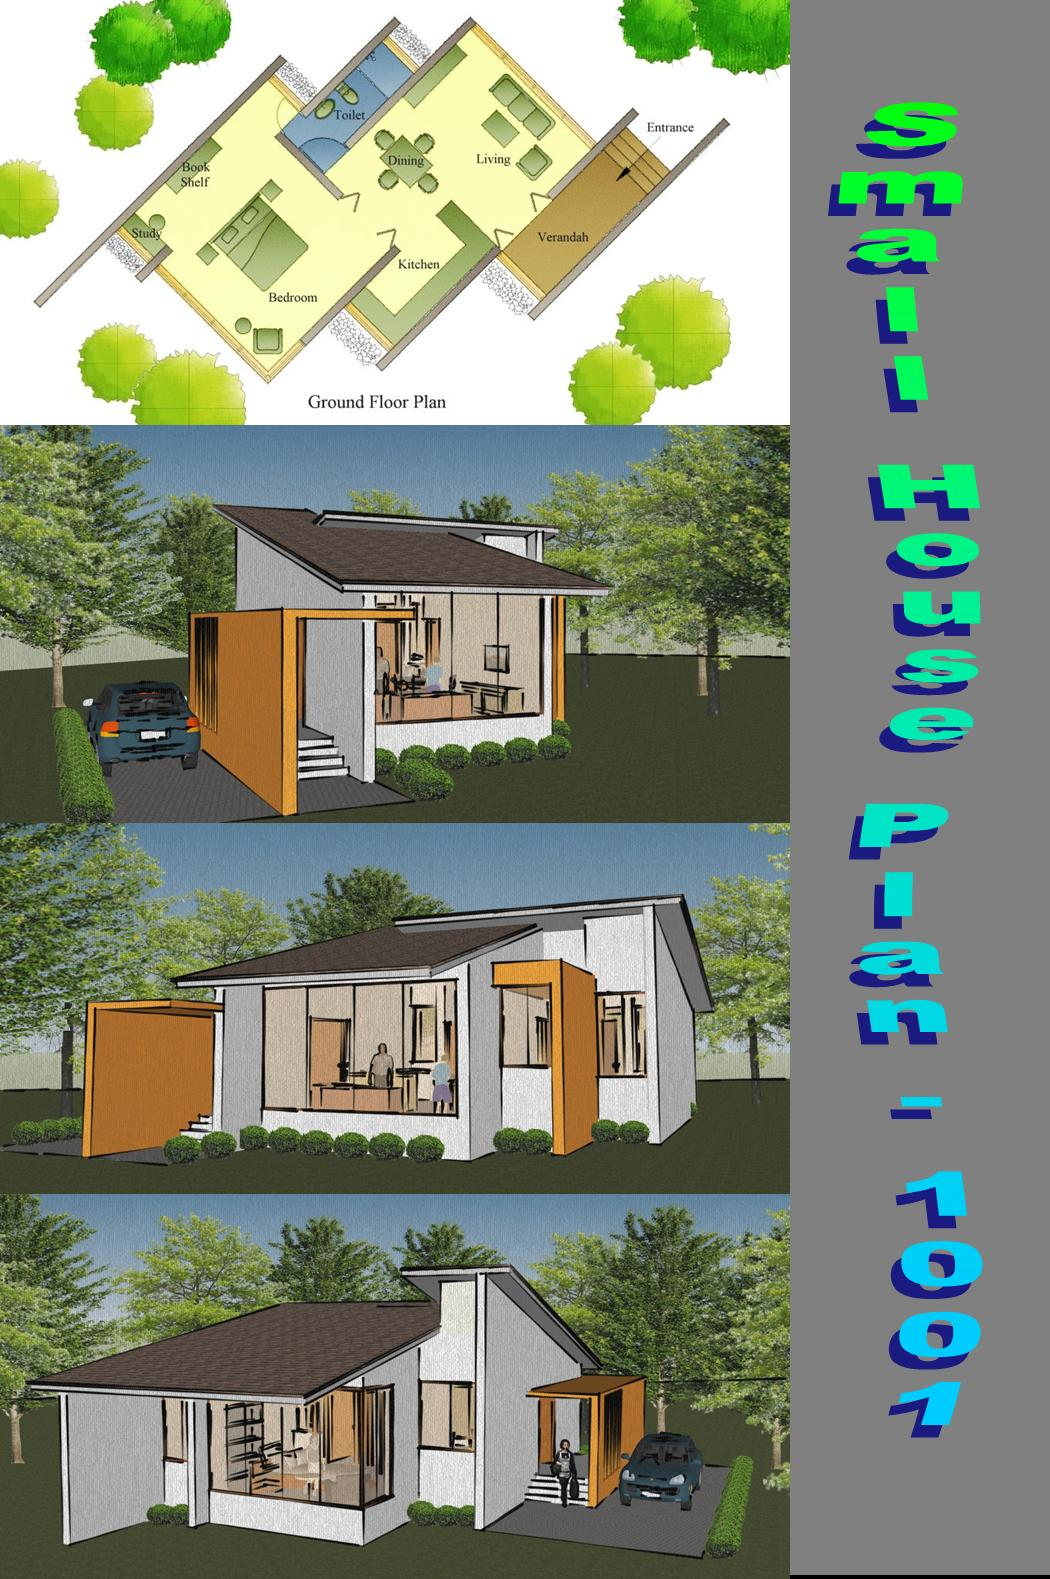 Home plans in india 5 best small home plans from for Small house design plans in india image